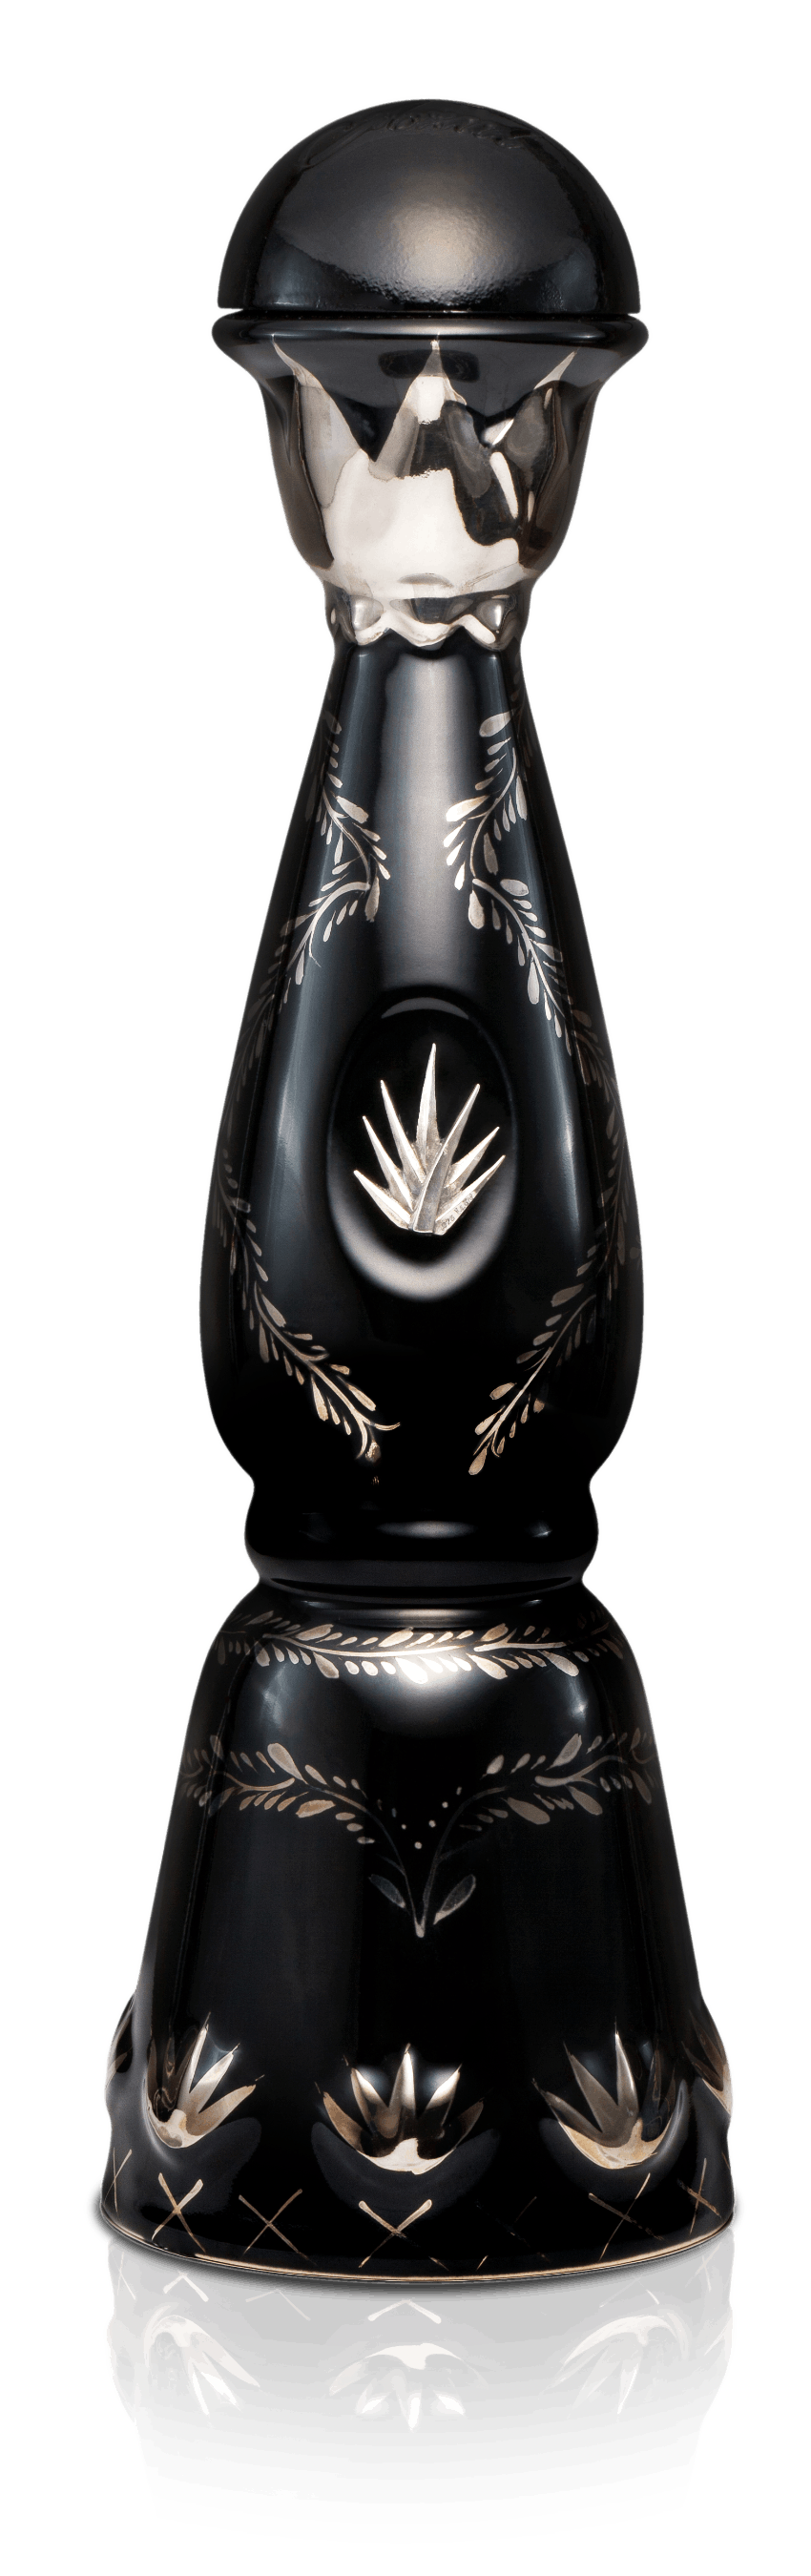 Bottle of Clase Azul Ultra made of black ceramic decorated with platinum and gold paint